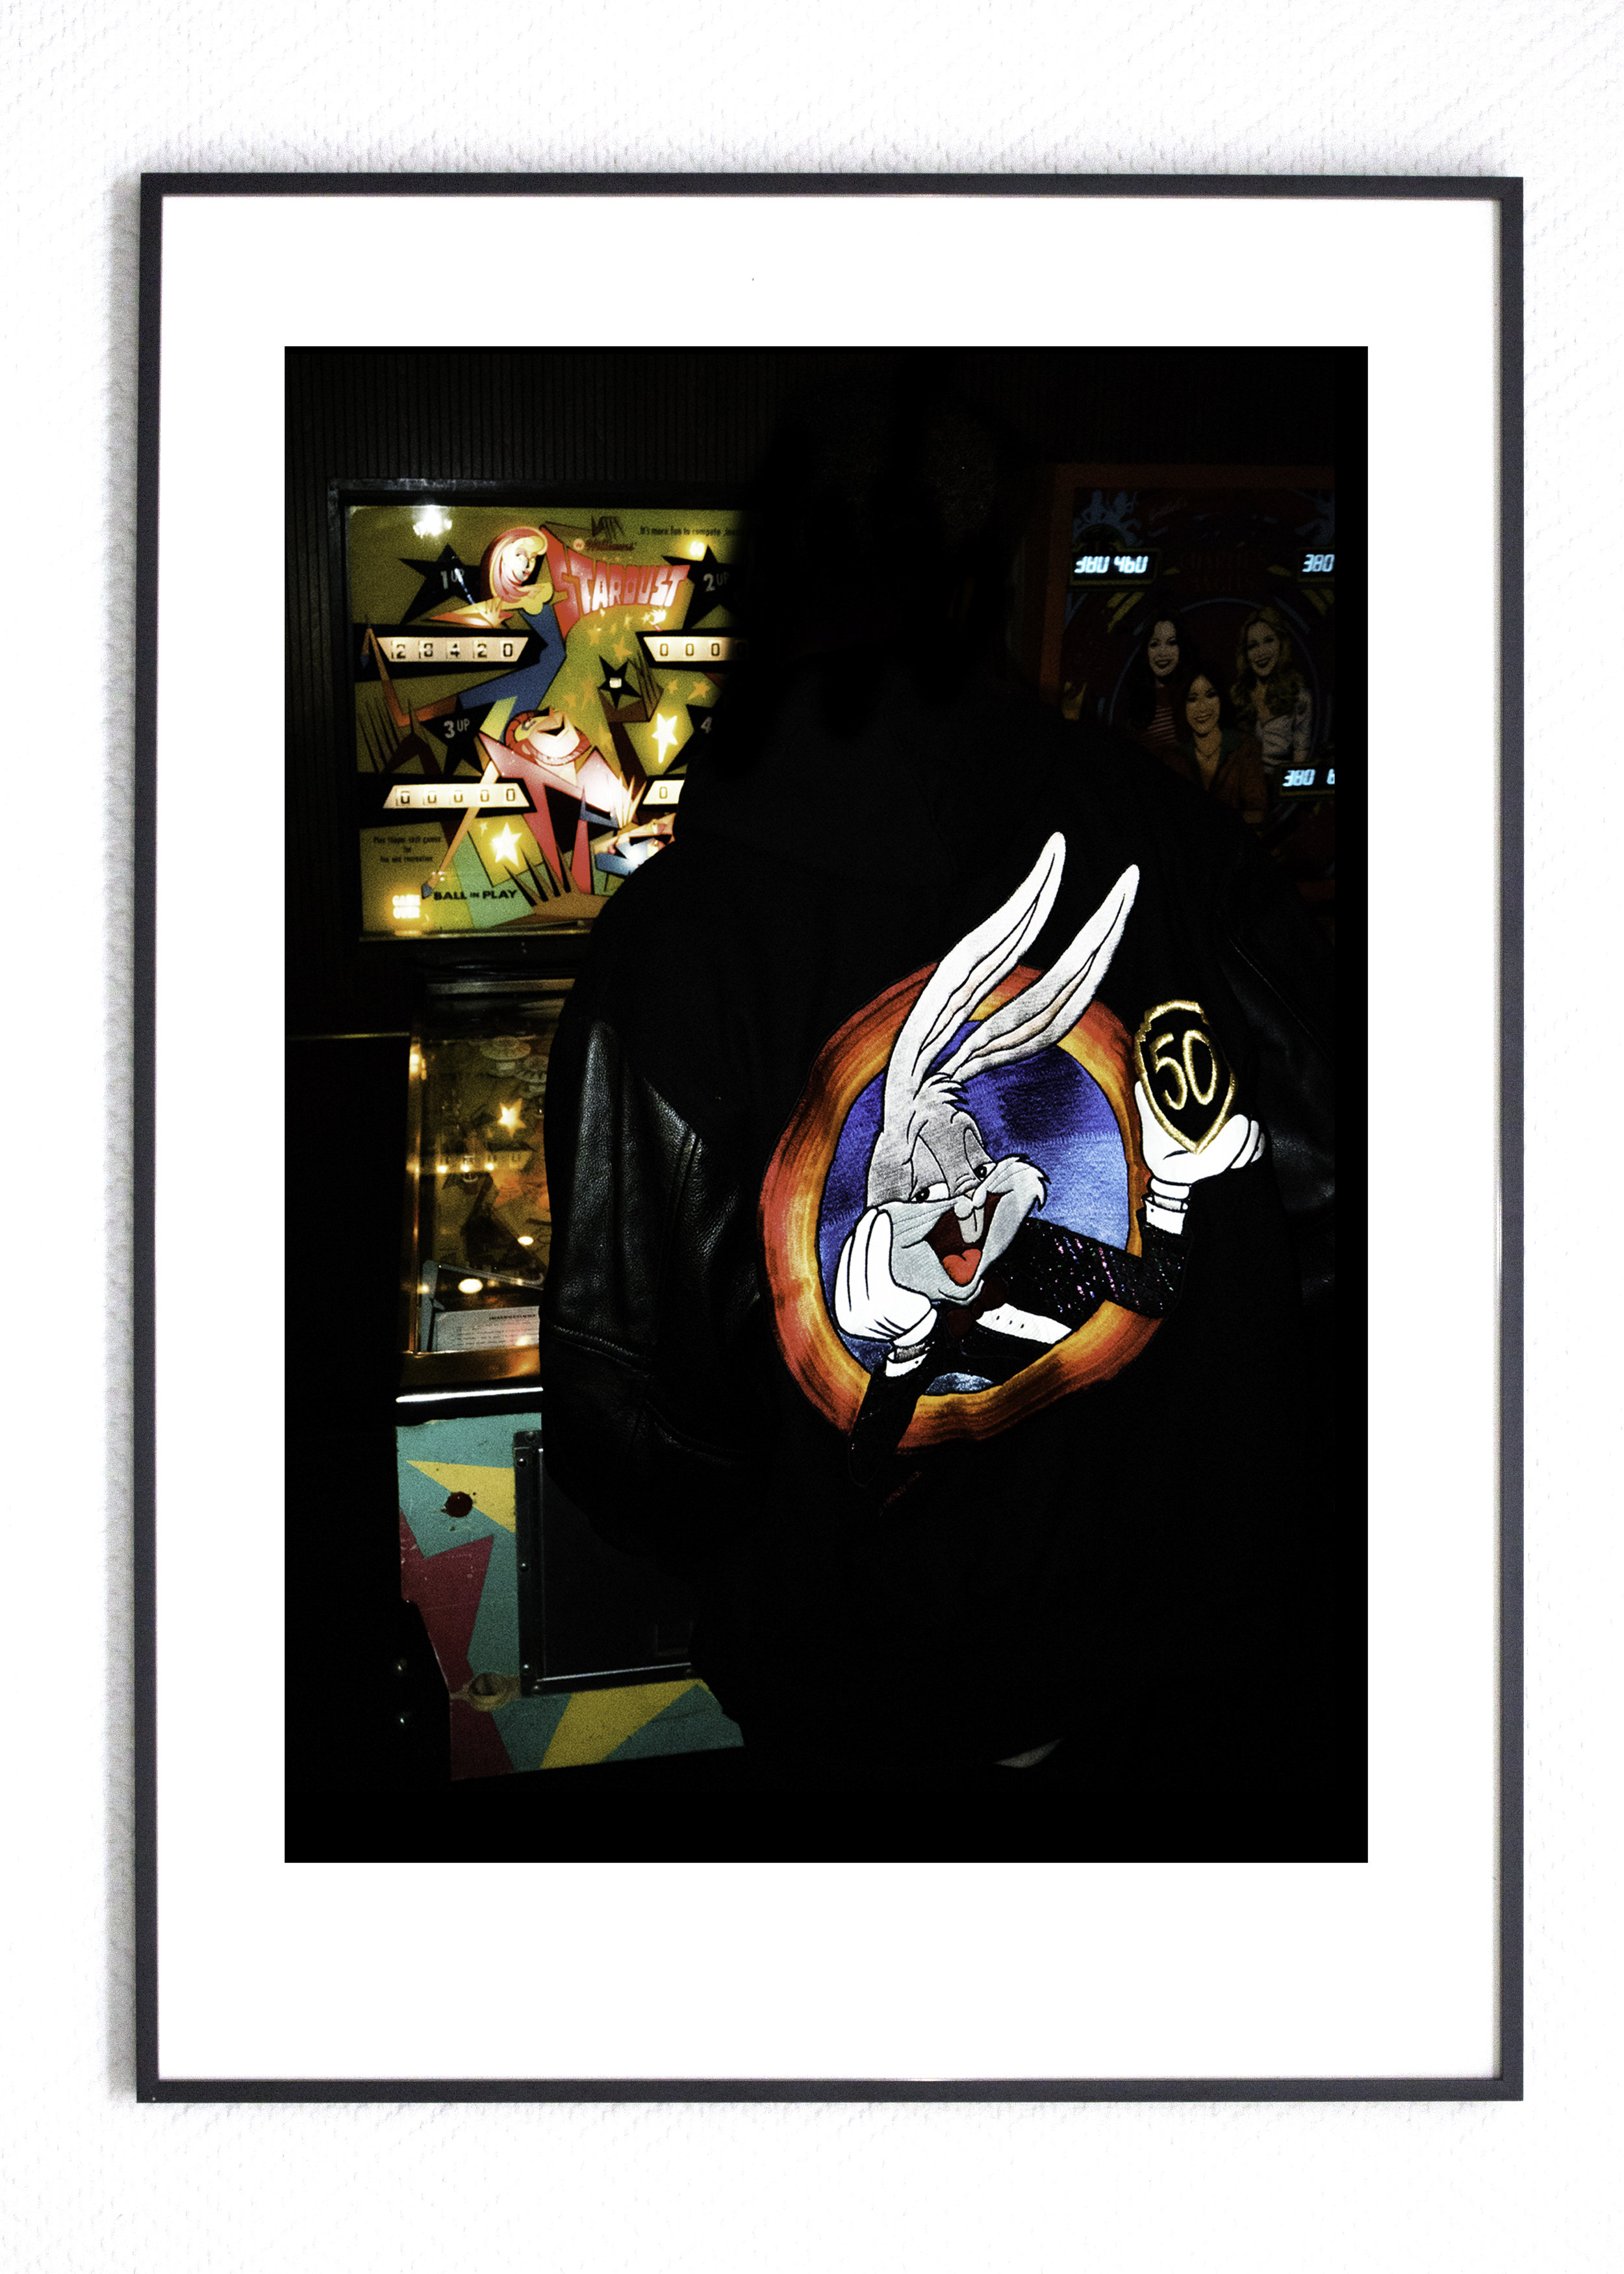 Looney in Action Edition 15+1AP Fine Art Giclée Print 2500,-